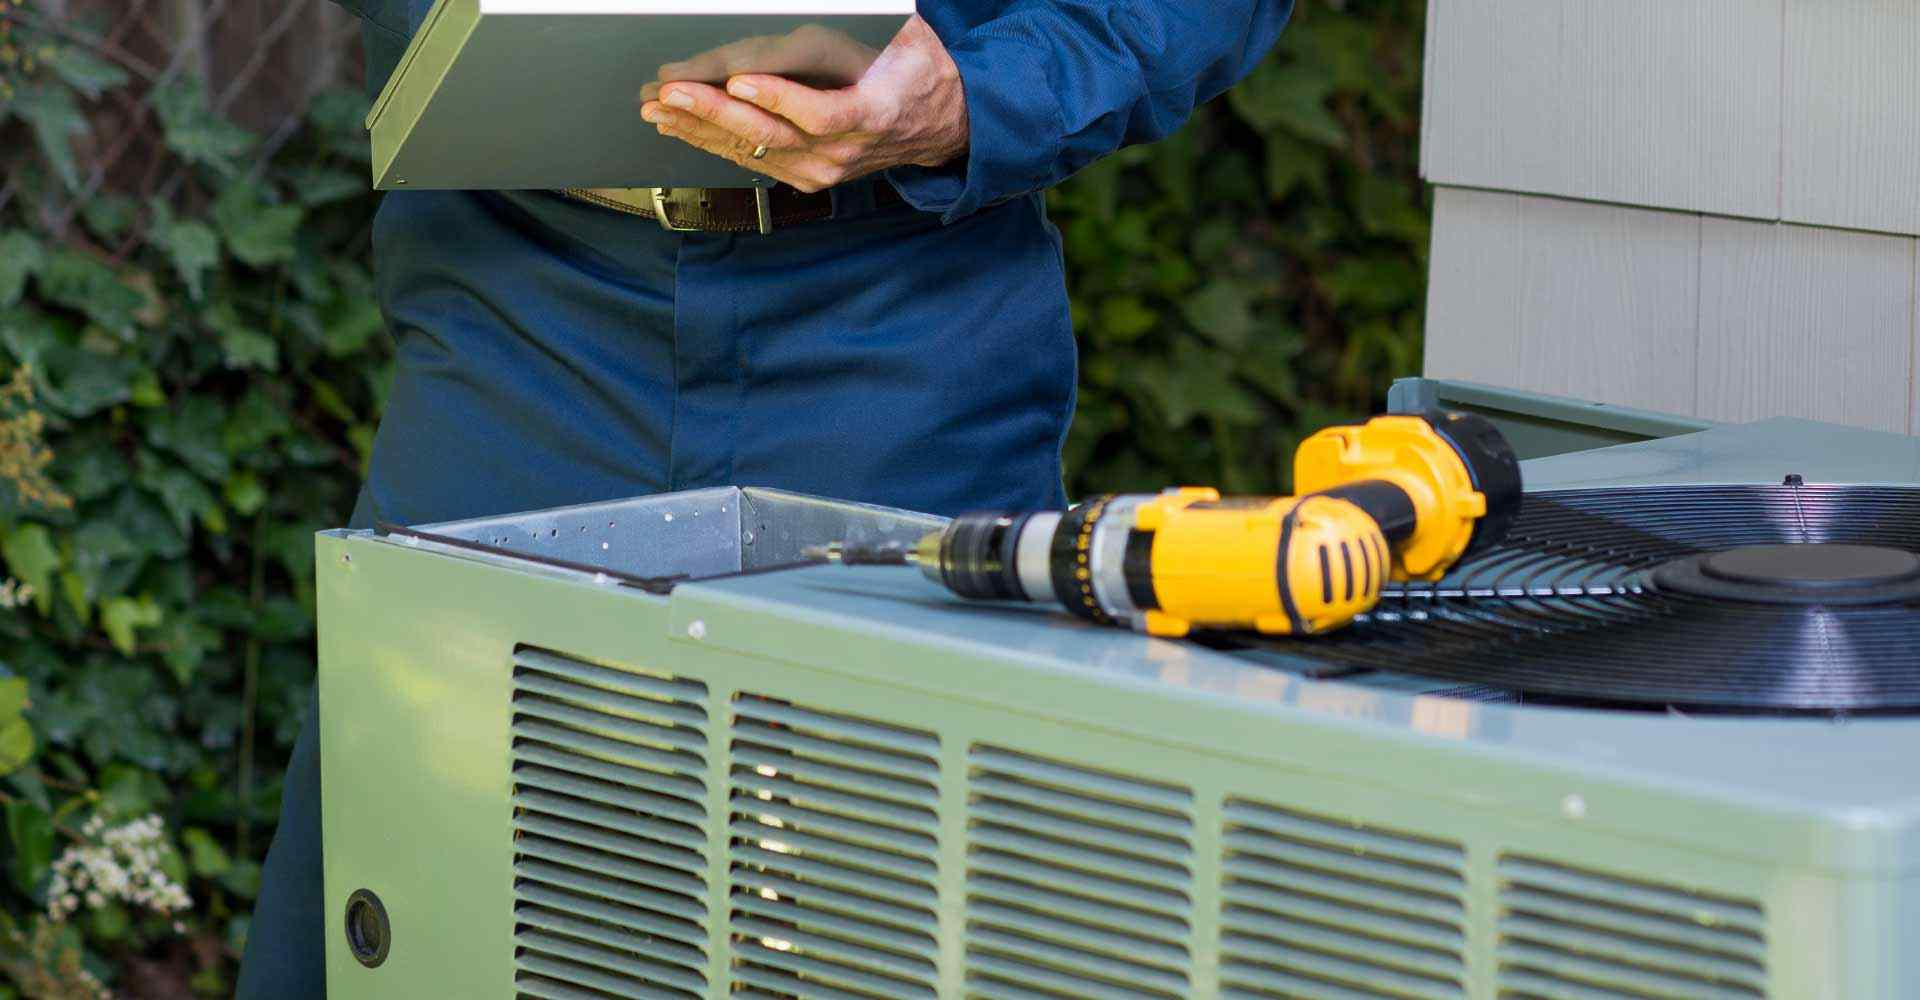 HVAC expert fixing an air conditioning unit on a call provided by his phone answering service